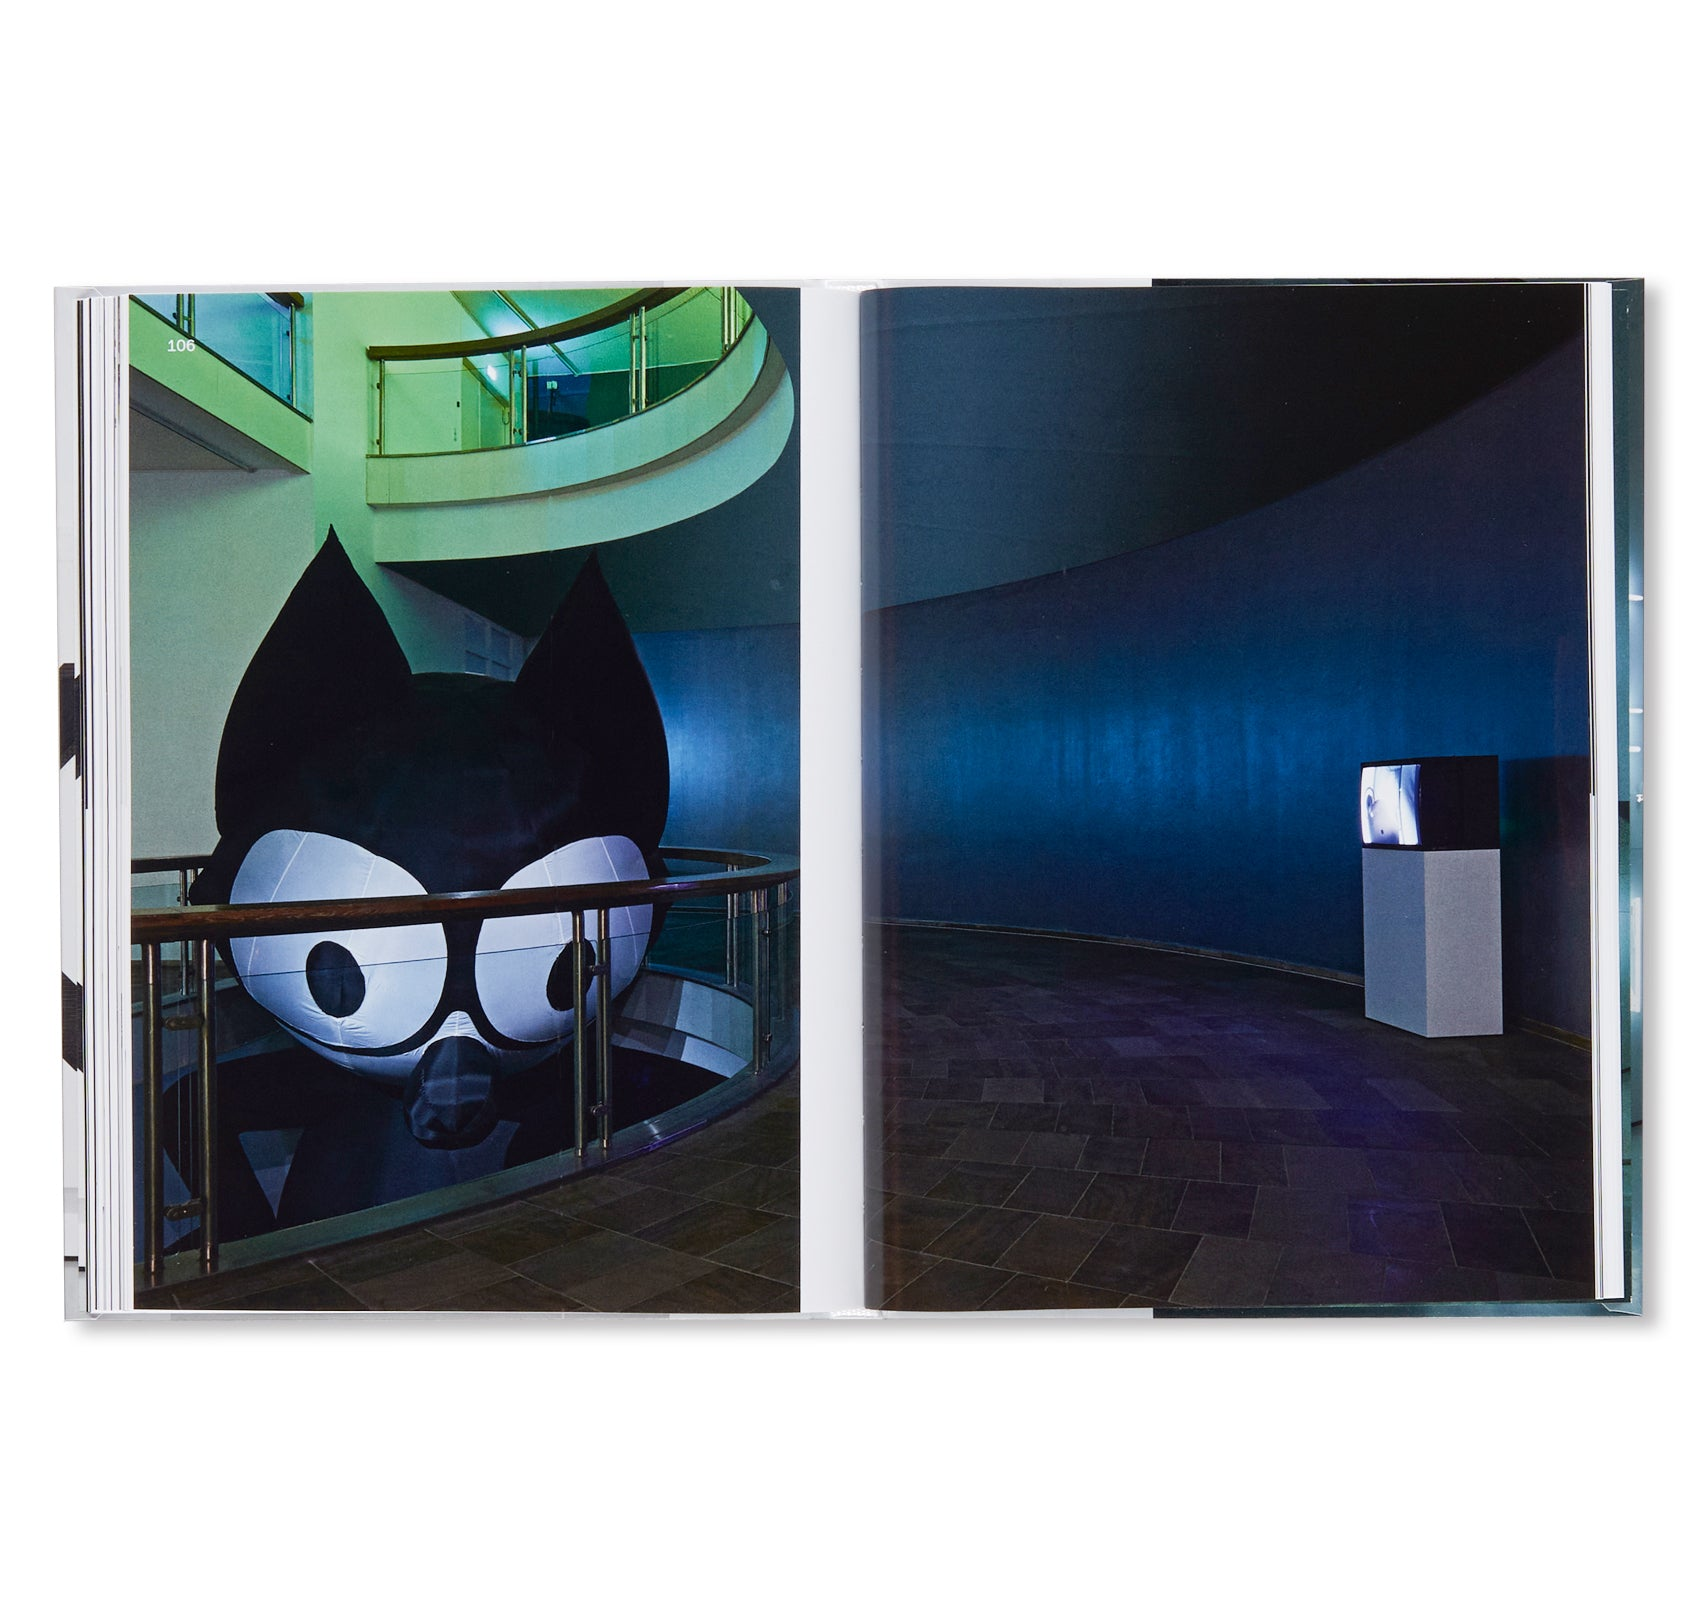 IMAGES - KASSEL, MUSEUM FRIDERICIANUM  by Pierre Huyghe, Wade Guyton, Seth Price, Mark Leckey, Philippe Parreno, Michel Majerus, Trisha Donnelly, Cory Arcangel, Sturtevant, Isa Genzken